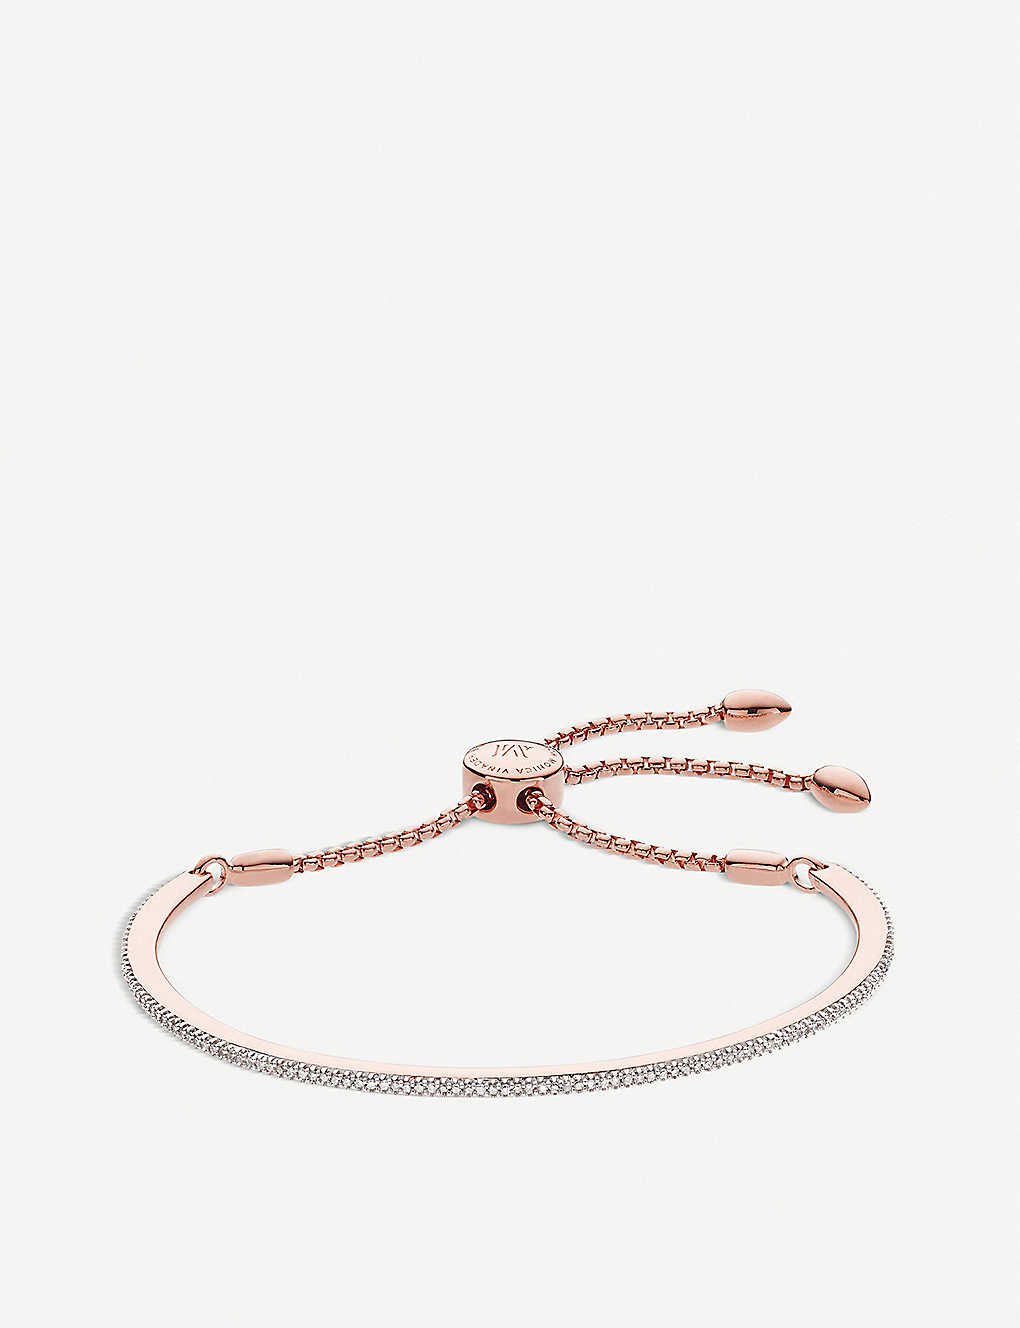 6f0c014cf91e2 MONICA VINADER - Fiji skinny bar 18ct rose gold vermeil friendship ...